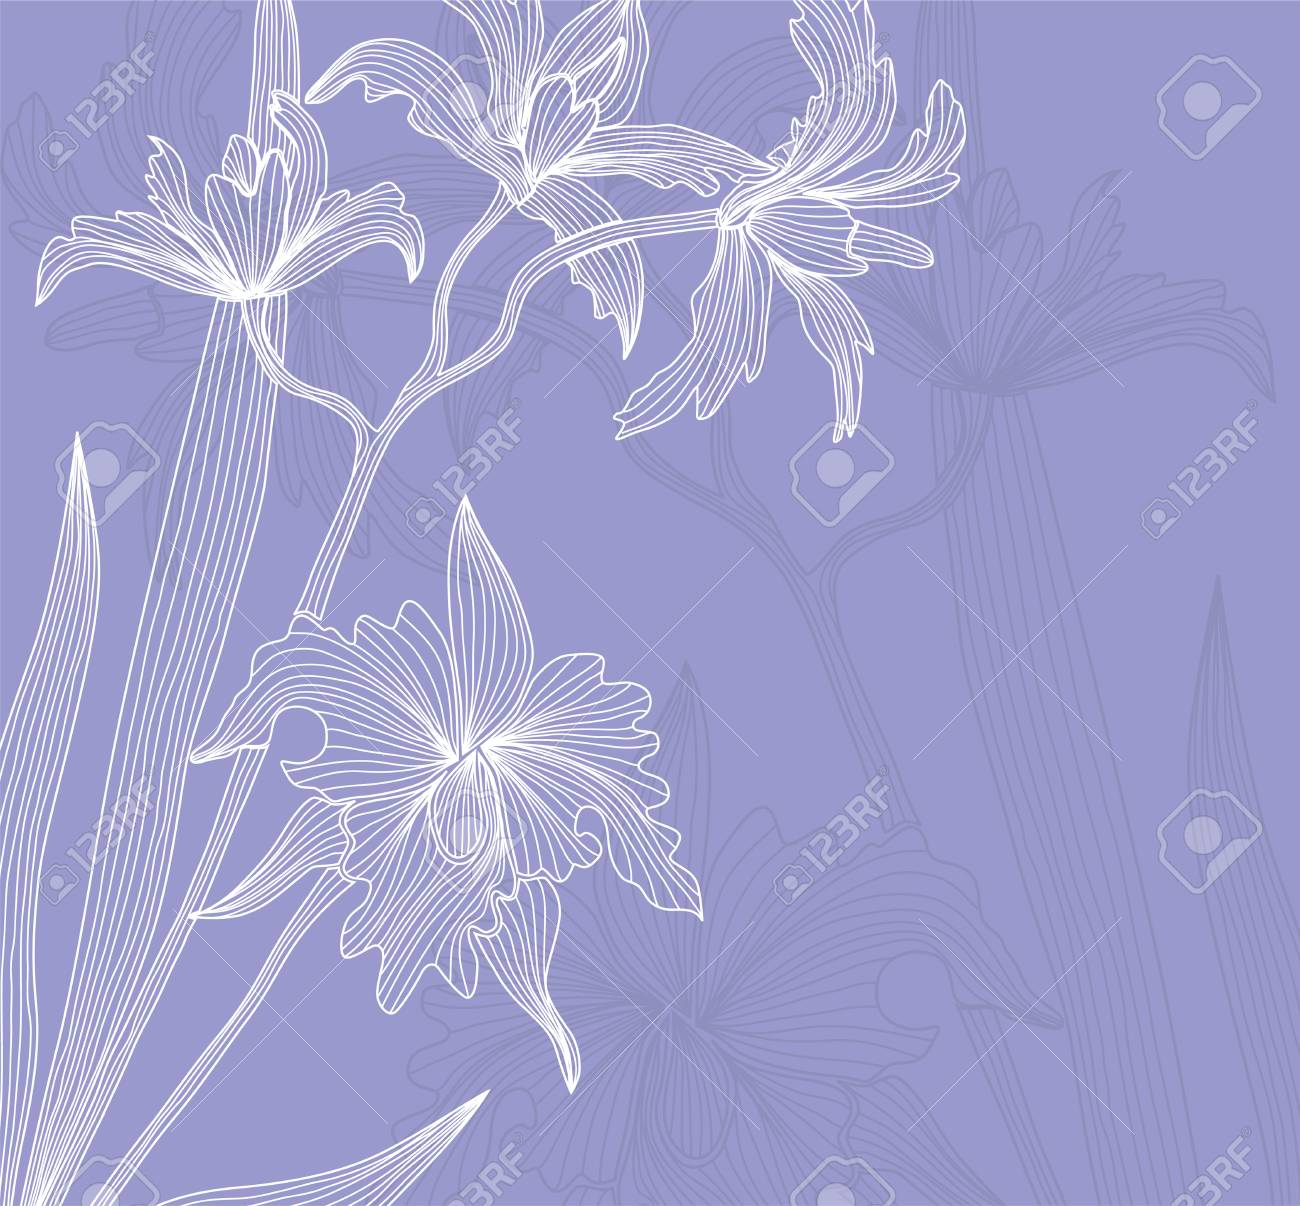 elegant floral invitation with abstract orchid flowers for your design Stock Vector - 18149517